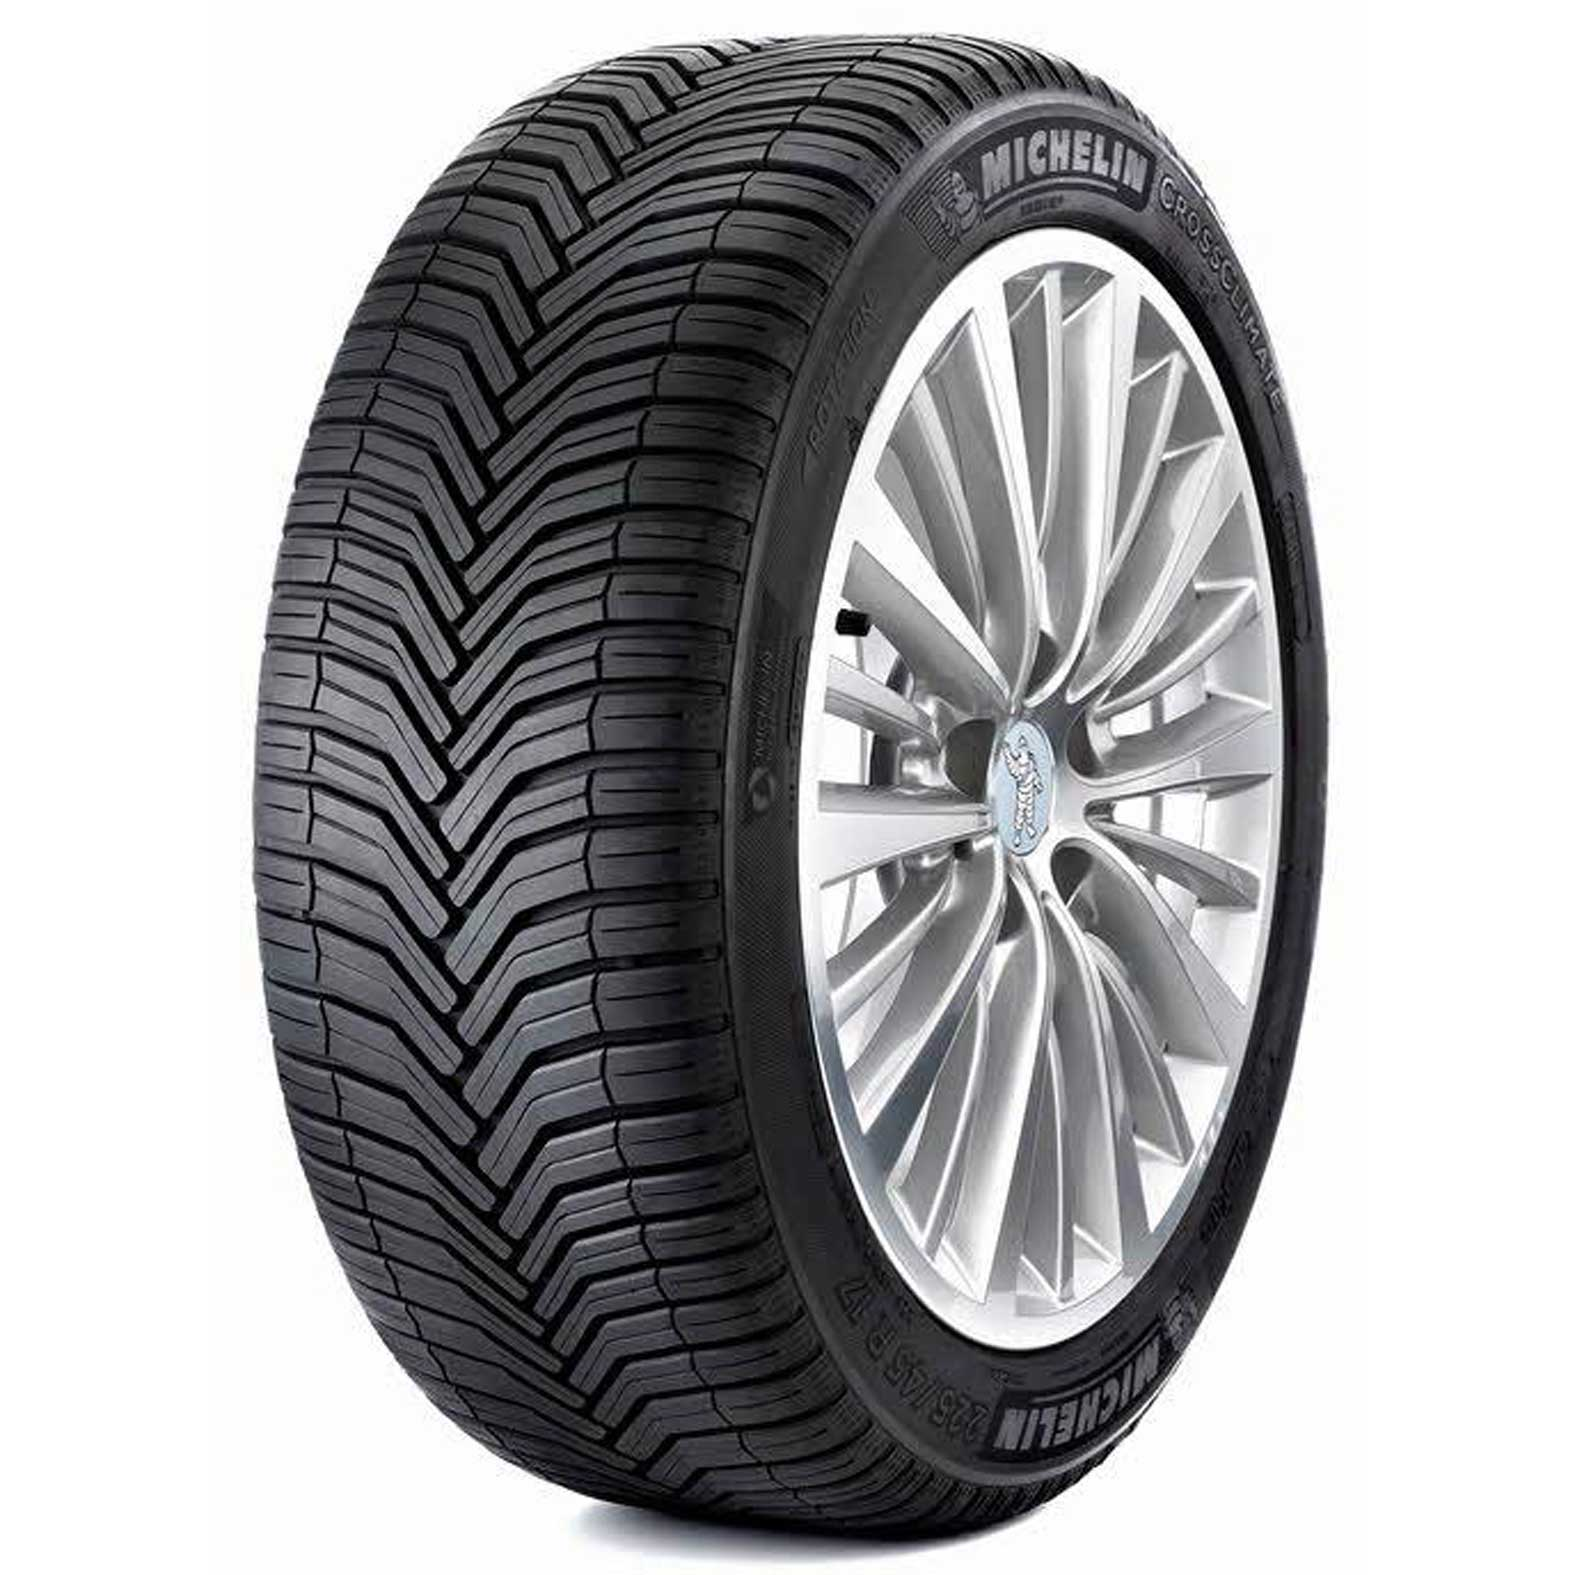 Michelin CROSS CLIMATE + tire - angle